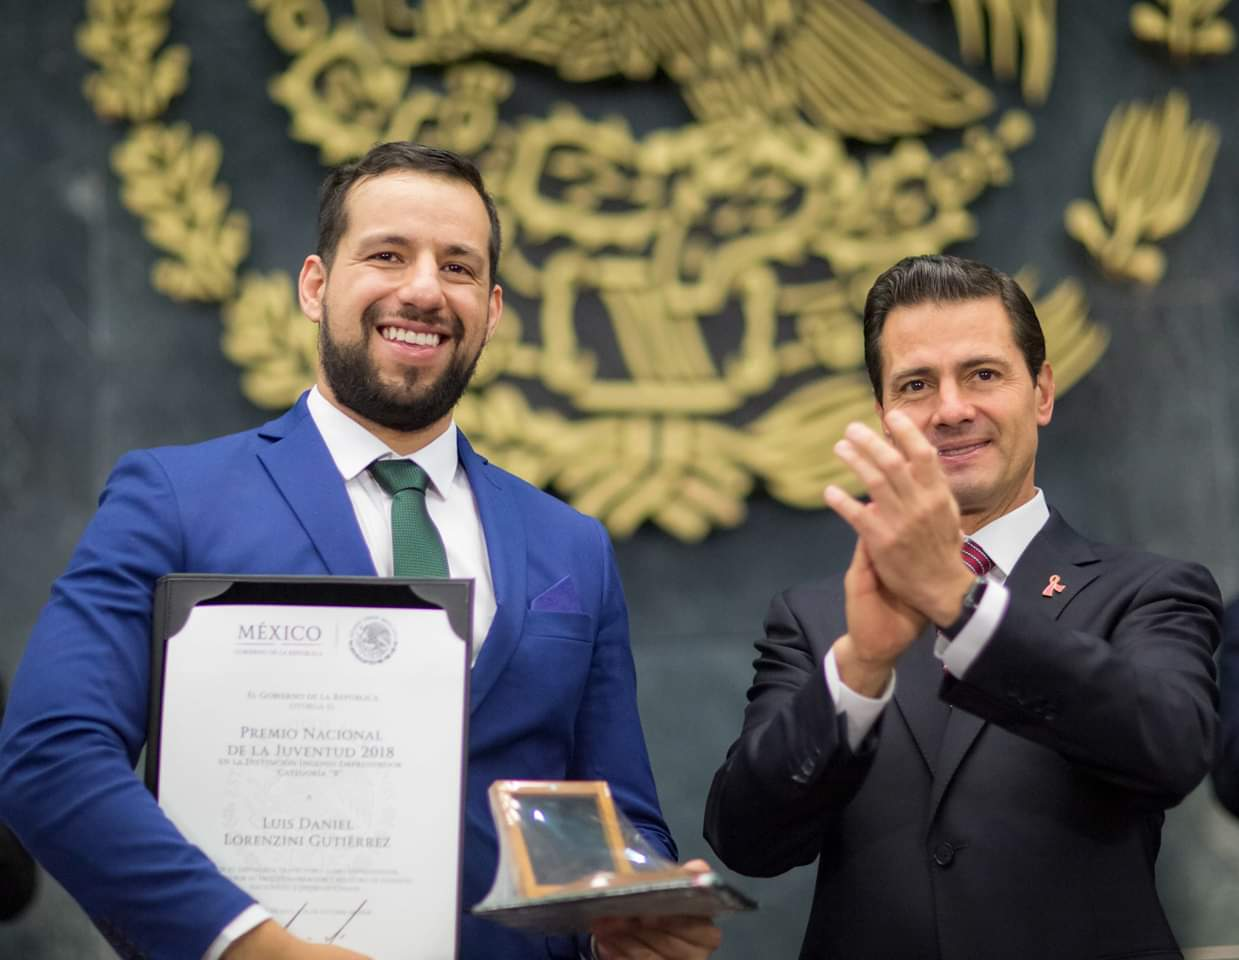 Daniel Lorenzini (left) poses for photos with former Mexican President Enrique Peña Nieto in 2018 after being awarded the Entrepreneurial Ingenuity Award from the Mexican government. (Special)